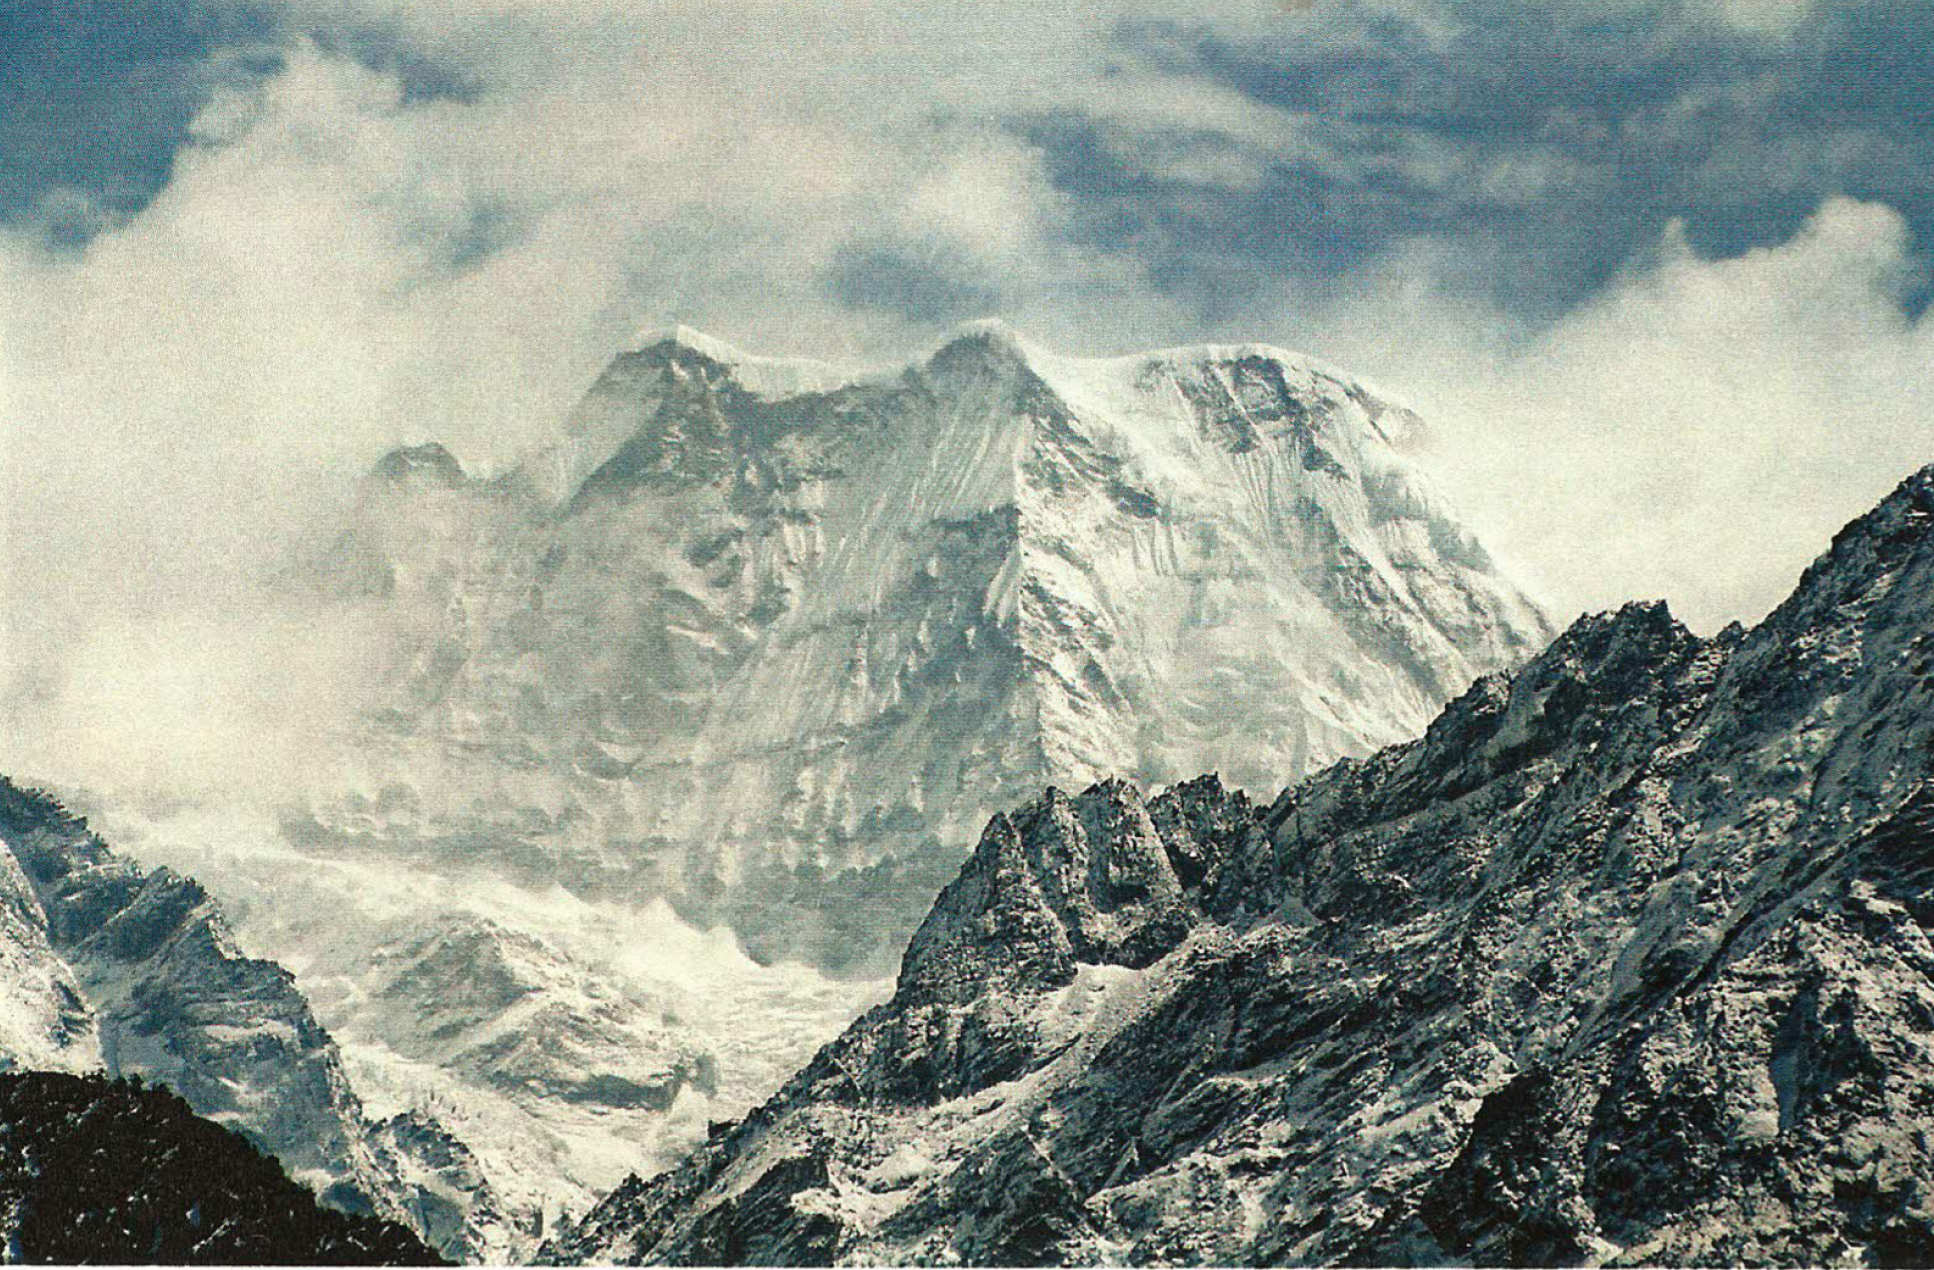 The Mera Massif